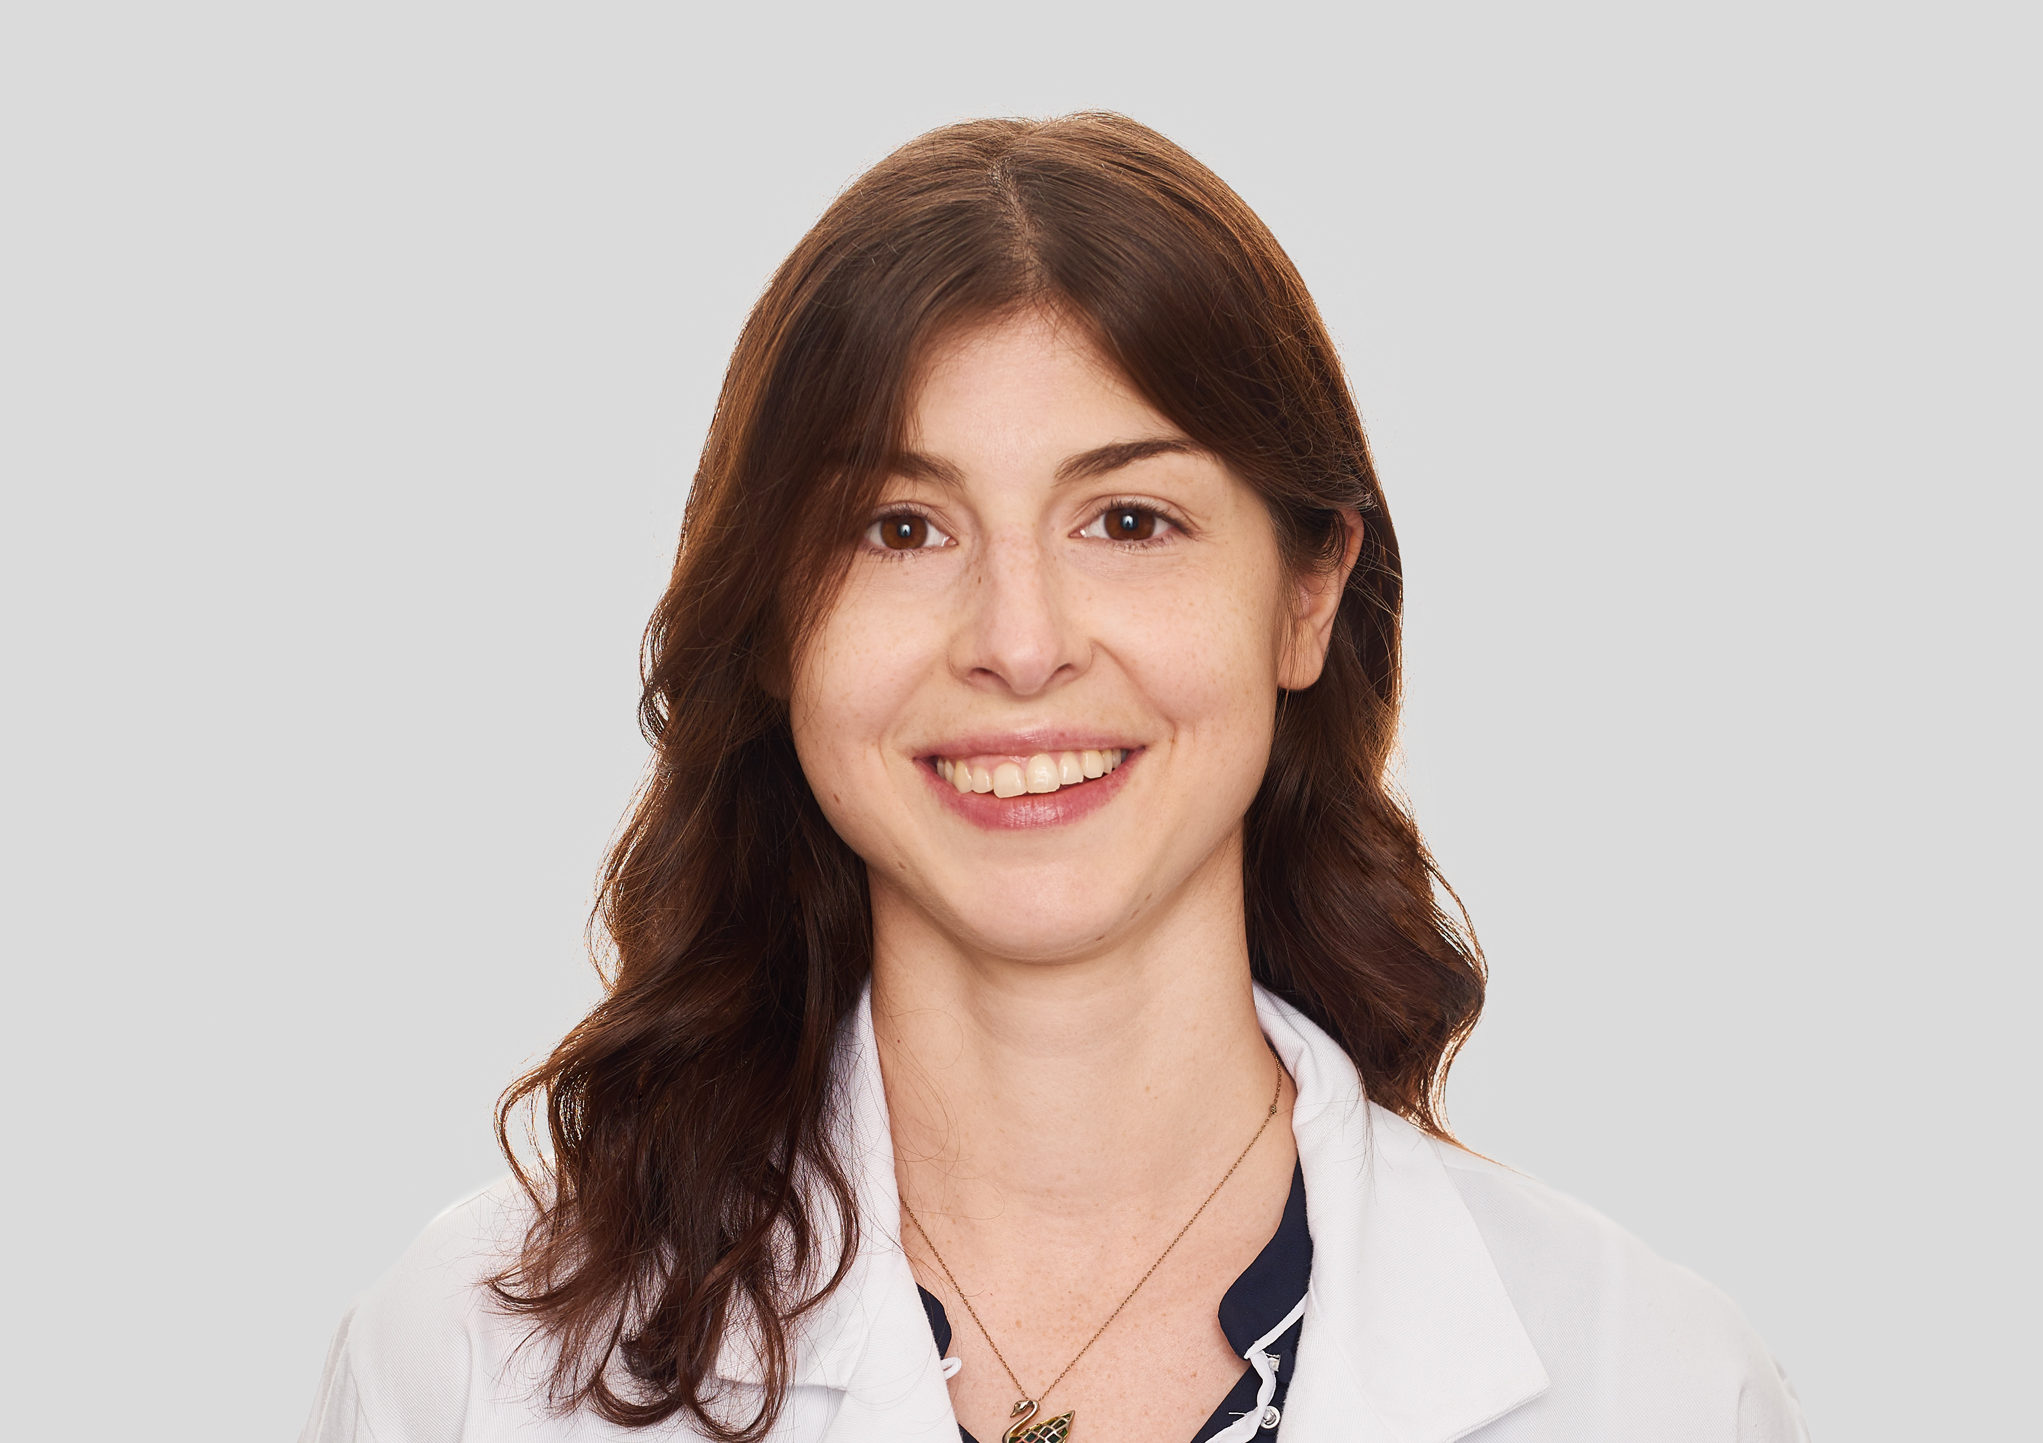 Dr. Stephanie Seller of the Animal Medical Center in New York City